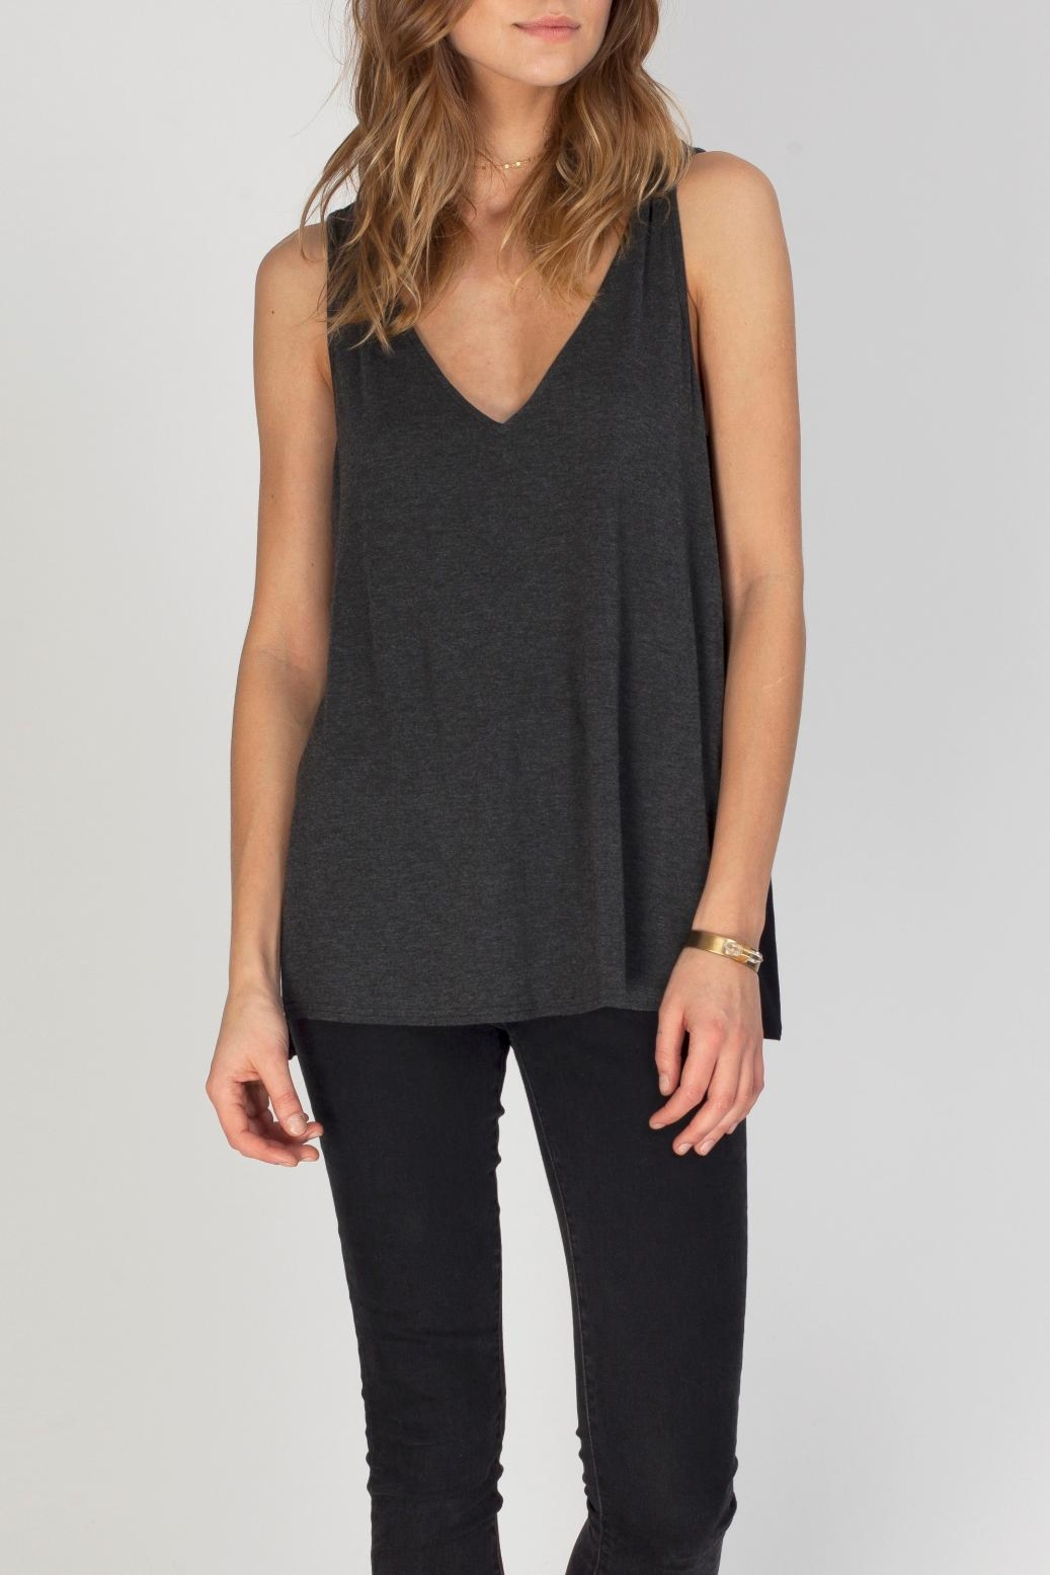 Gentle Fawn Ripley Tank Top - Front Cropped Image